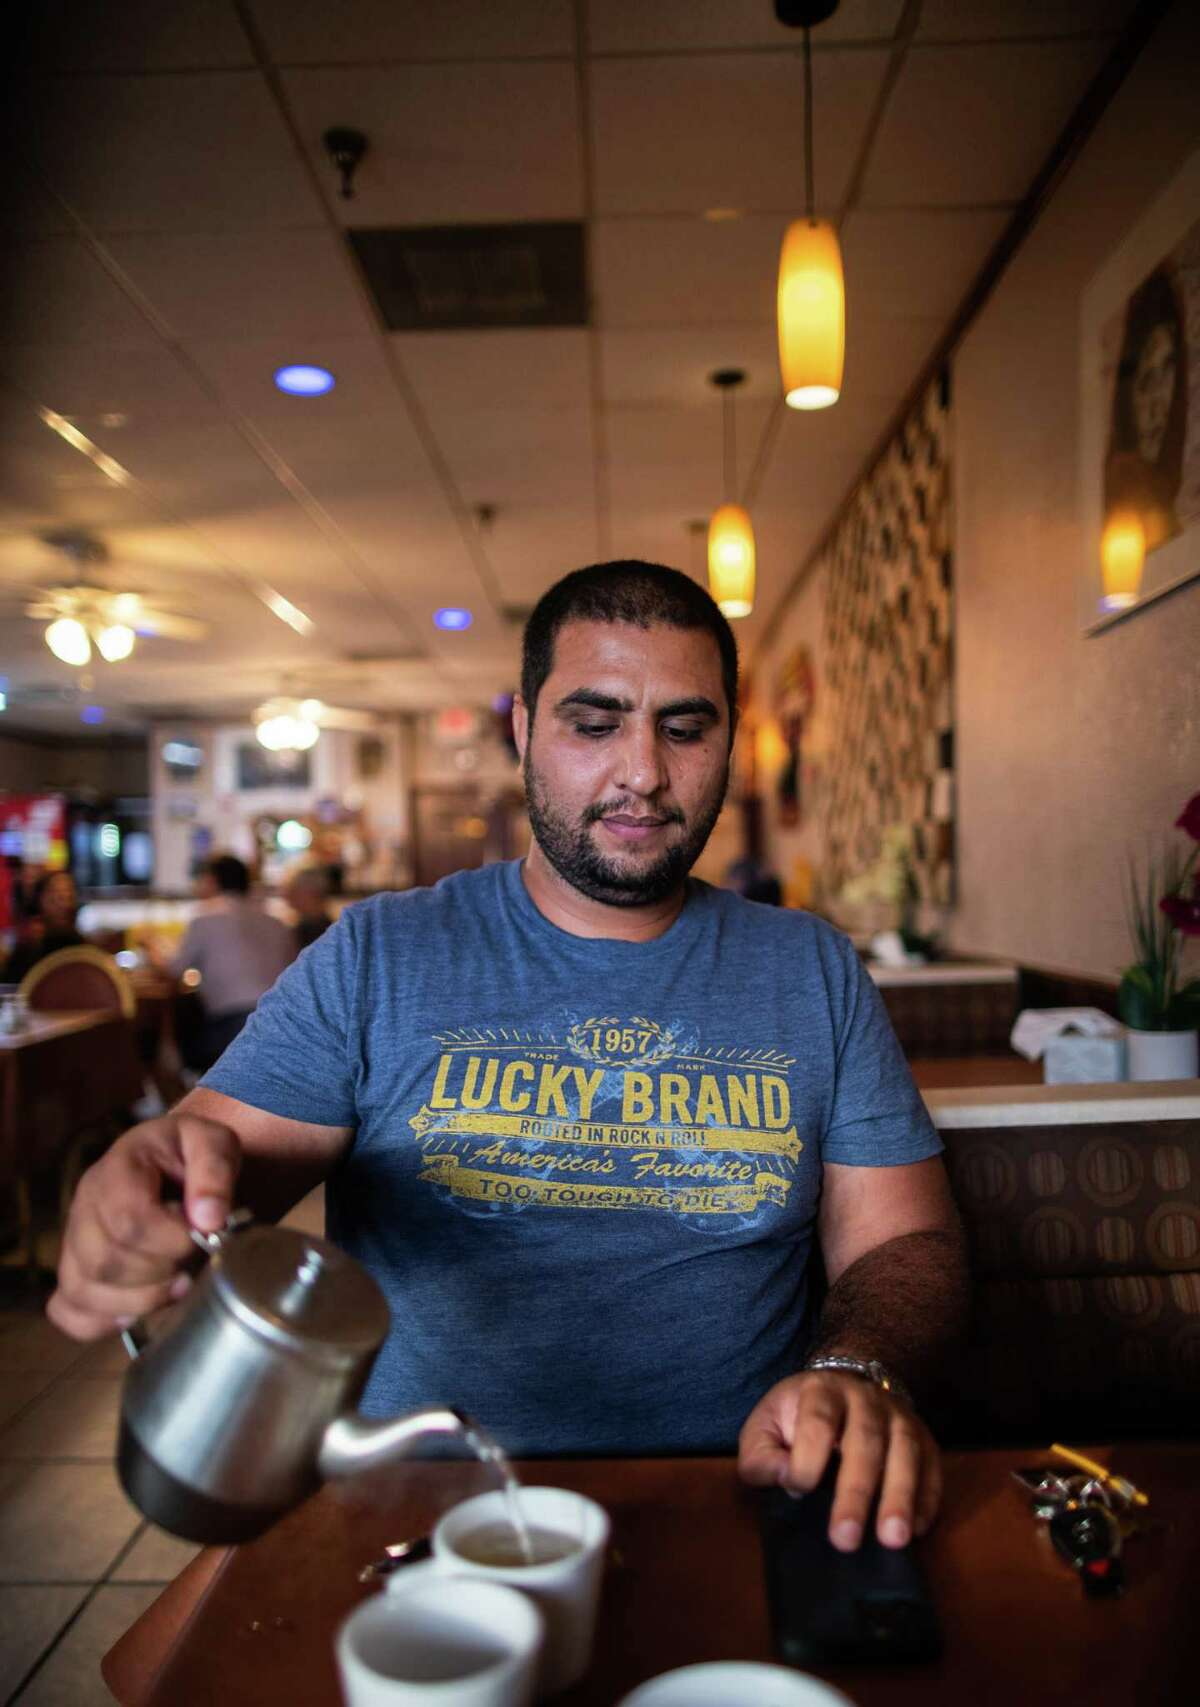 Ahmad Rashad, an Afghan-American and former translator in Afghanistan for U.S. soldiers pours tea for himself at the Afghan Village Restaurant, Tuesday, Sept. 7, 2021, in Houston. Rashad was about 10 years old when a series of terrorist attacks took place in U.S. soil on Sept. 11, 2001.